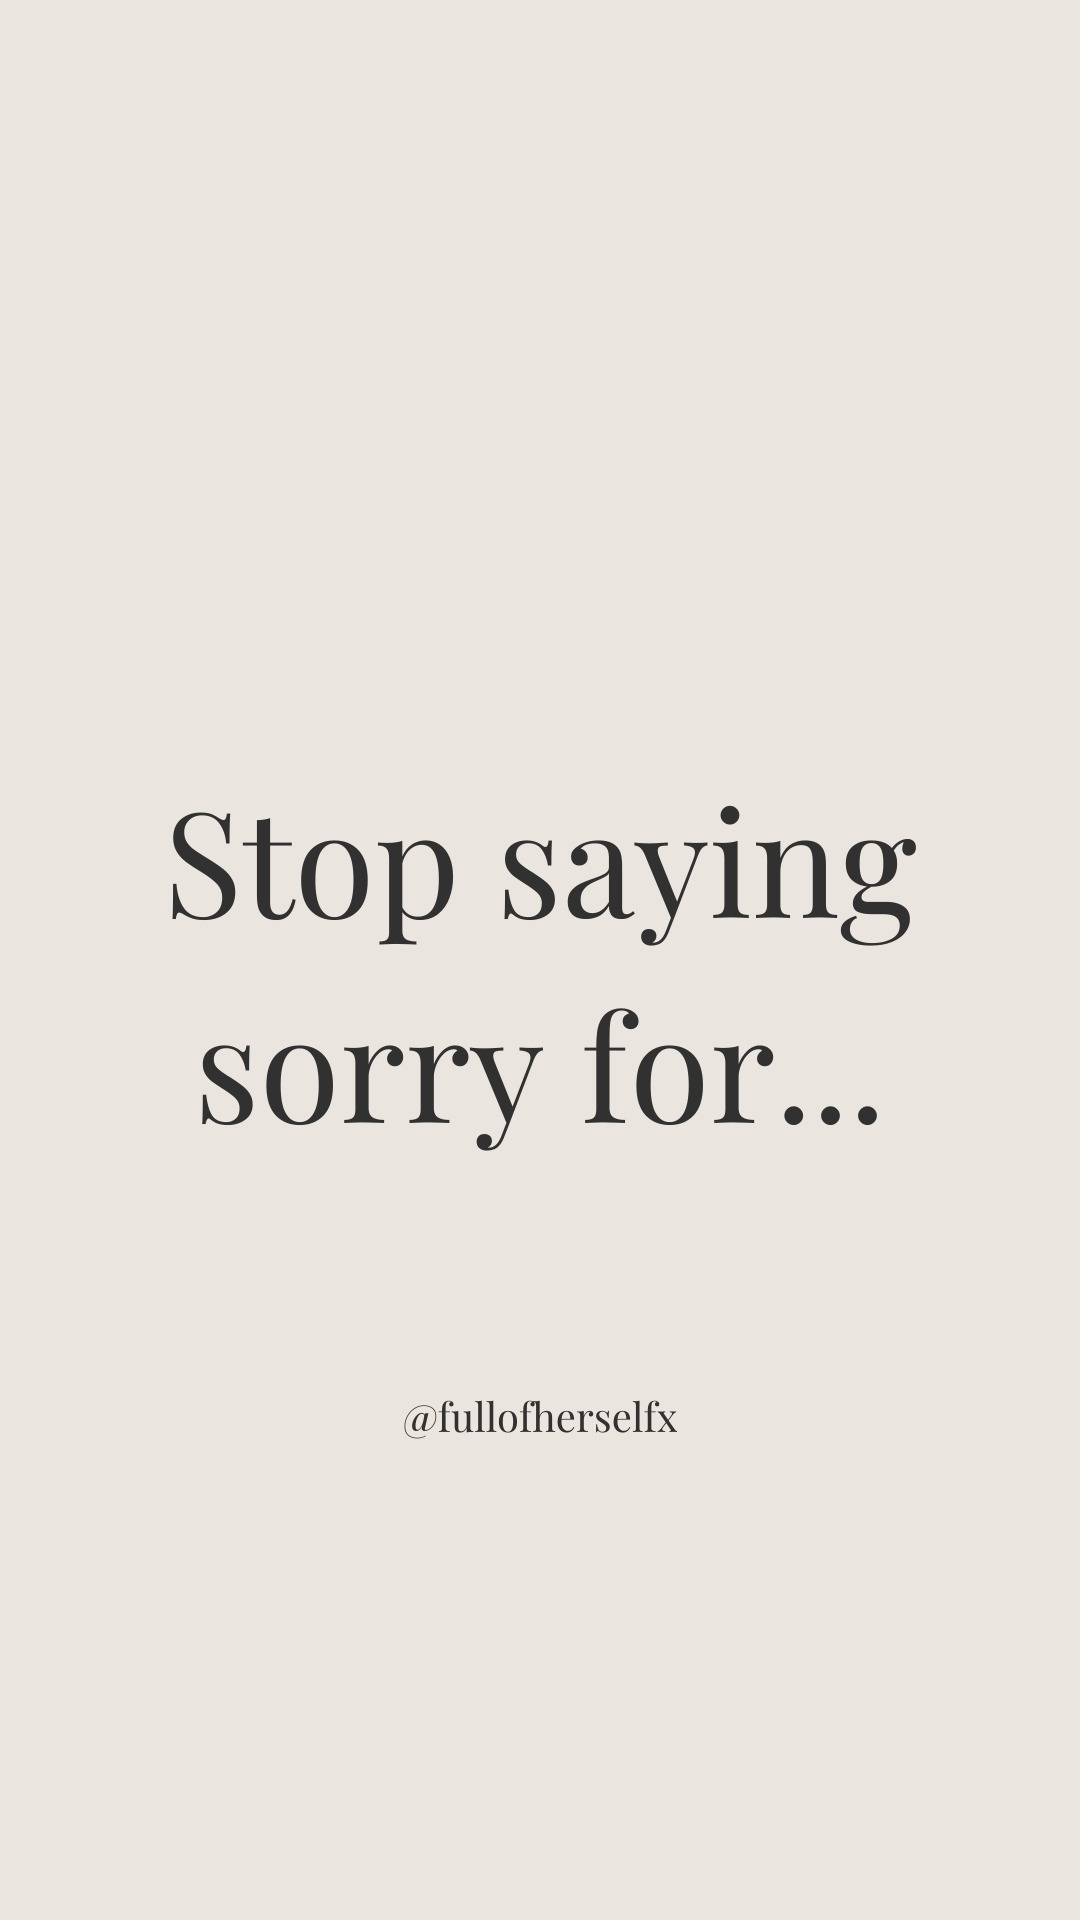 Stop saying sorry for...